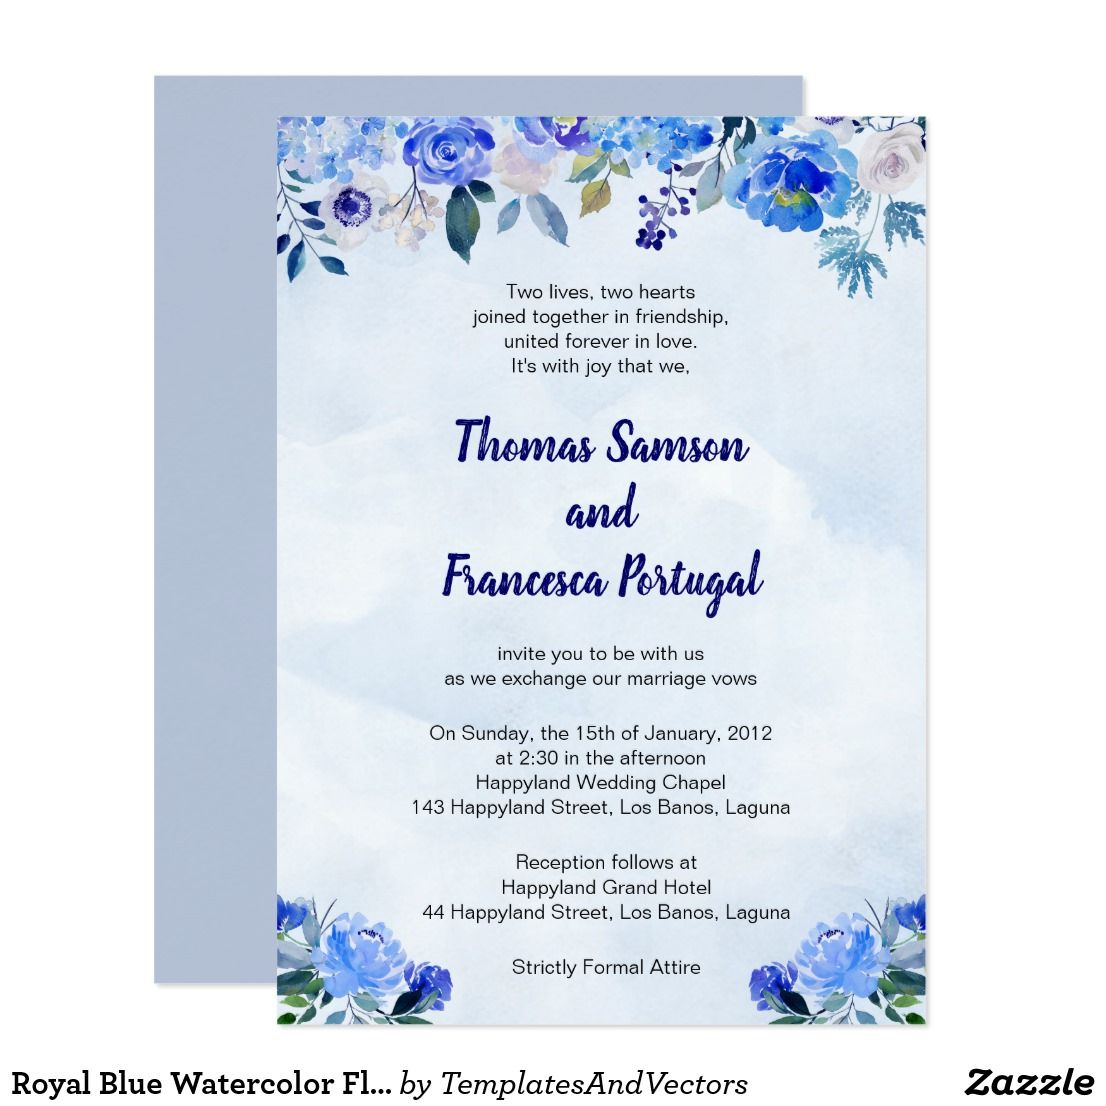 Royal Blue Wedding Invitation Card Template